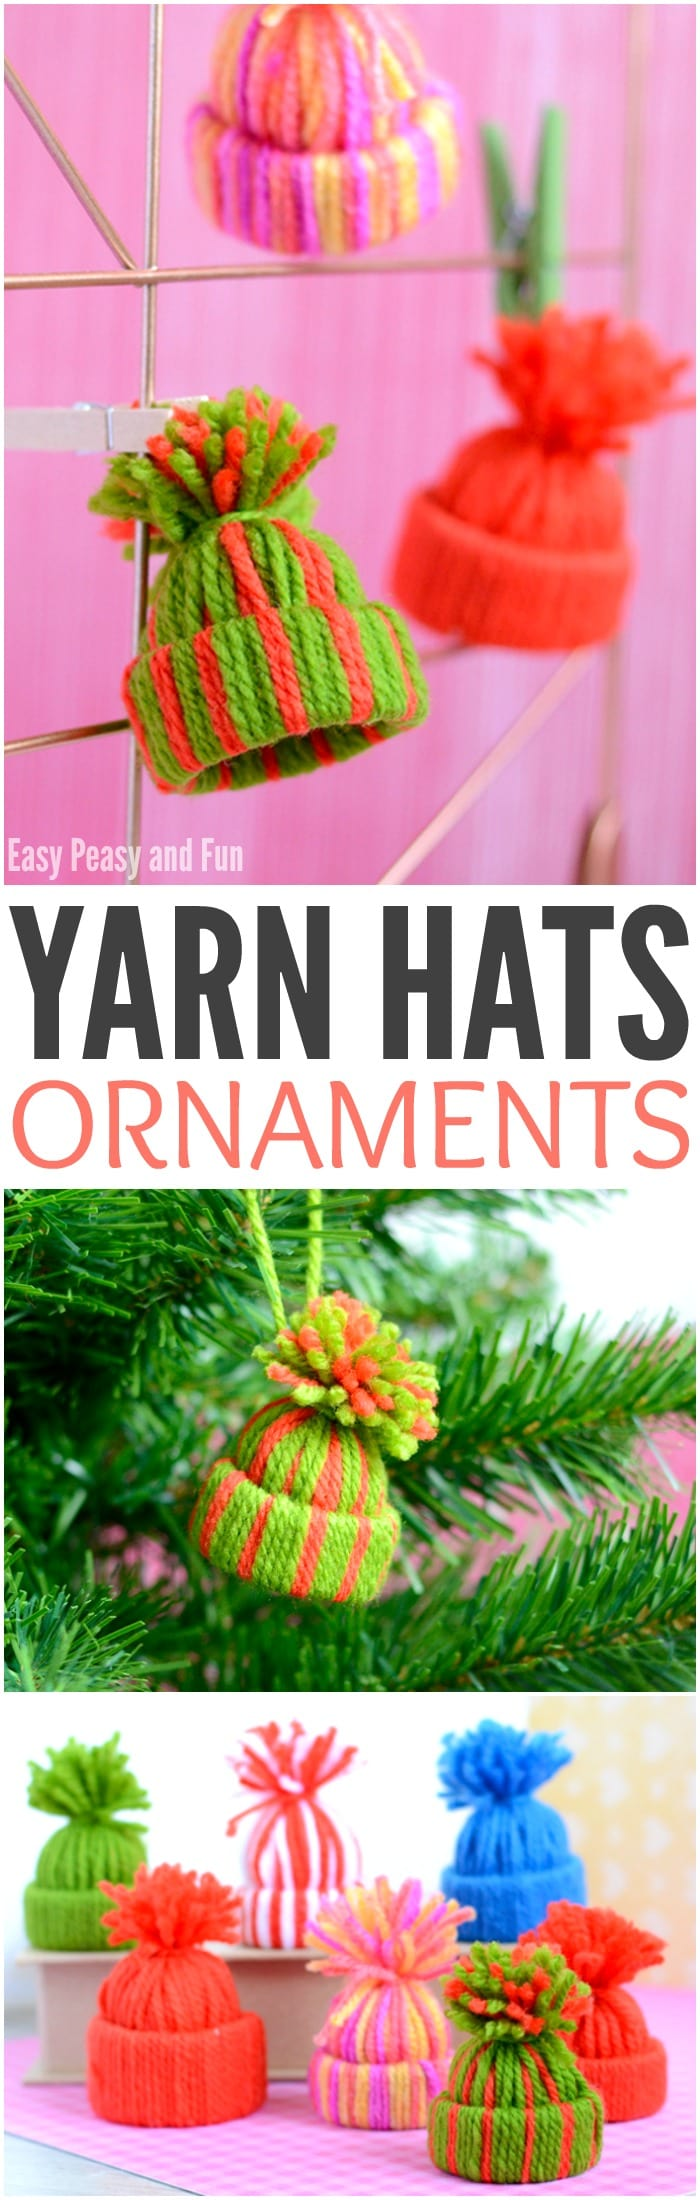 Mini yarn hats ornaments diy christmas ornaments easy for Fun decorations for christmas